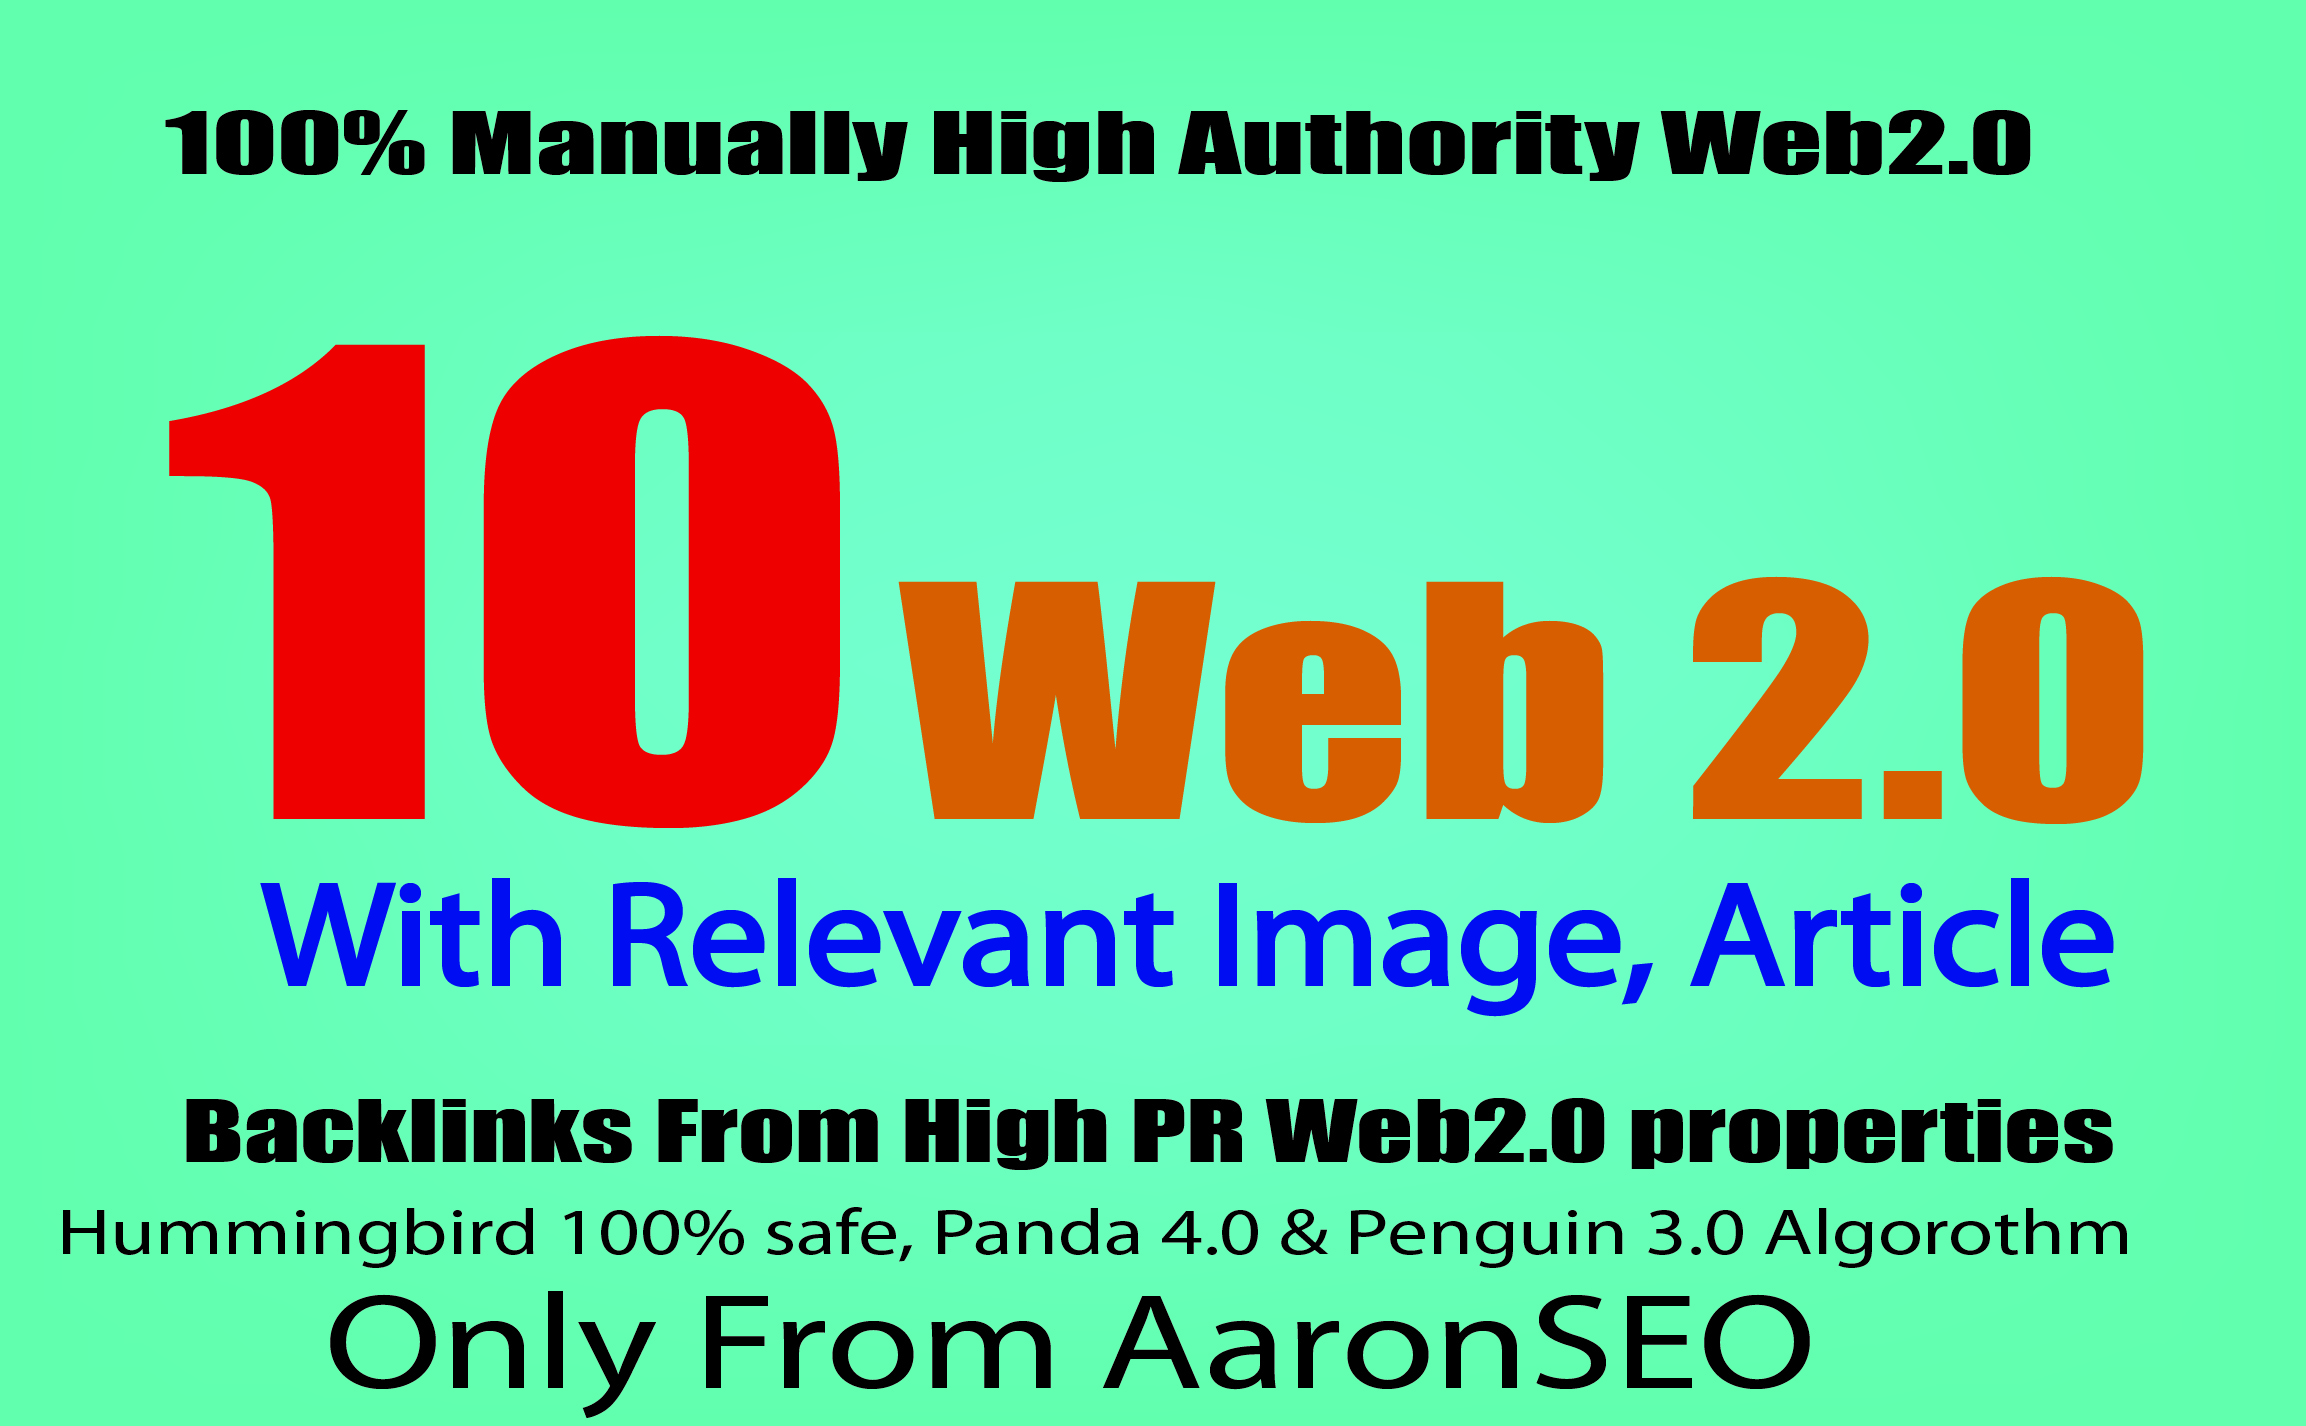 10 High Authority Web2.0 Properties With Relevant Image, Article